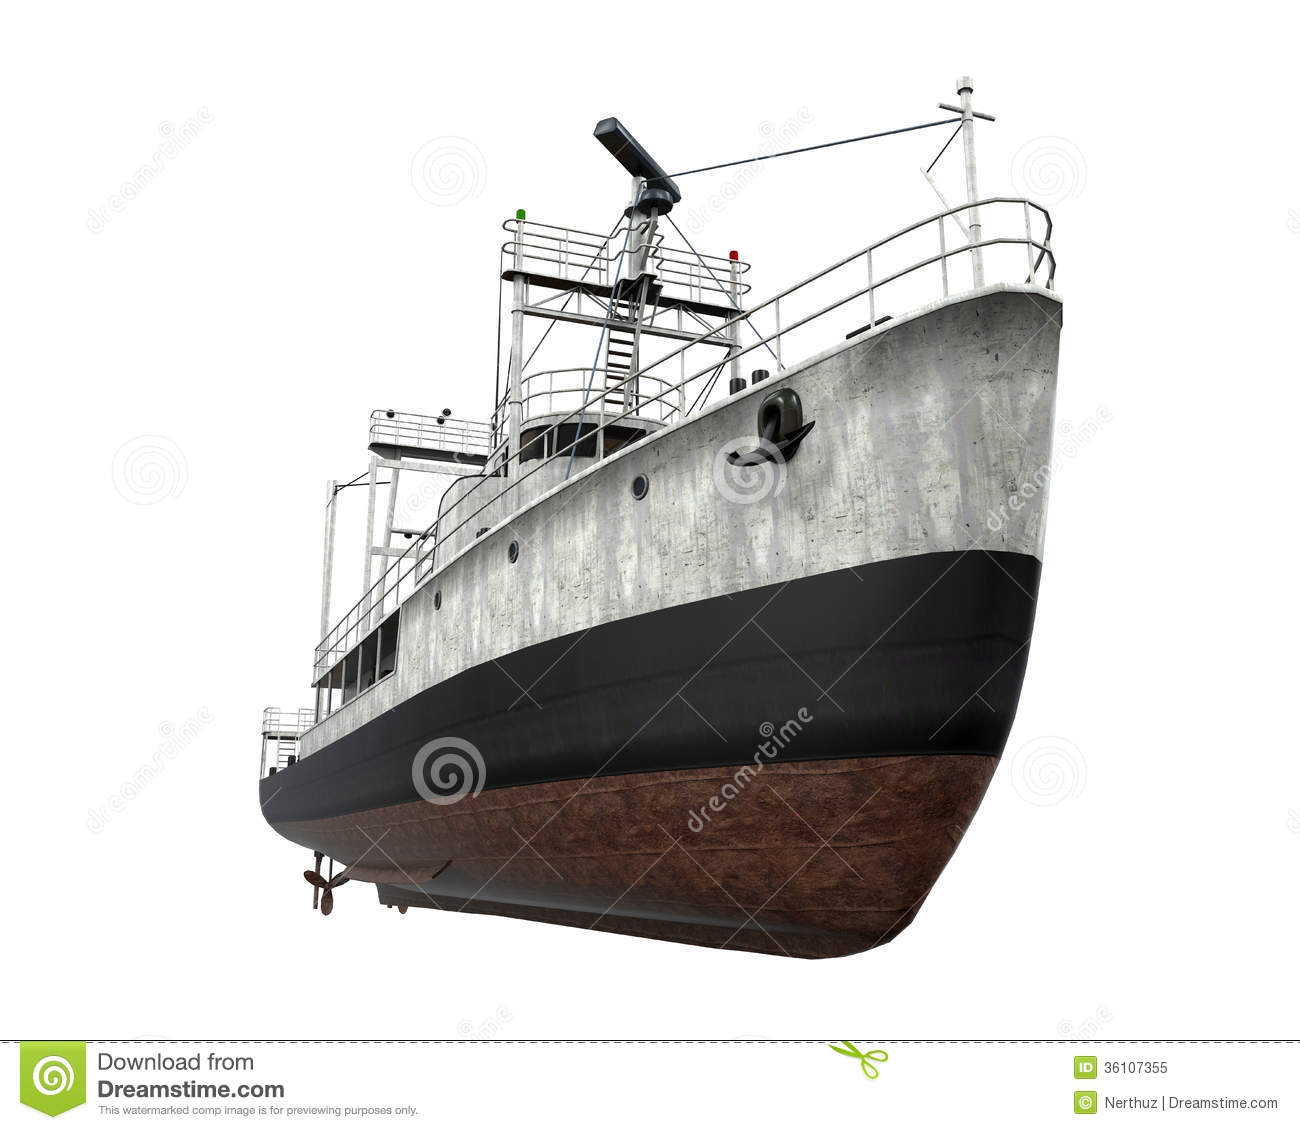 Fishing Boat Isolated Royalty Free Stock Photo - Image: 36107355